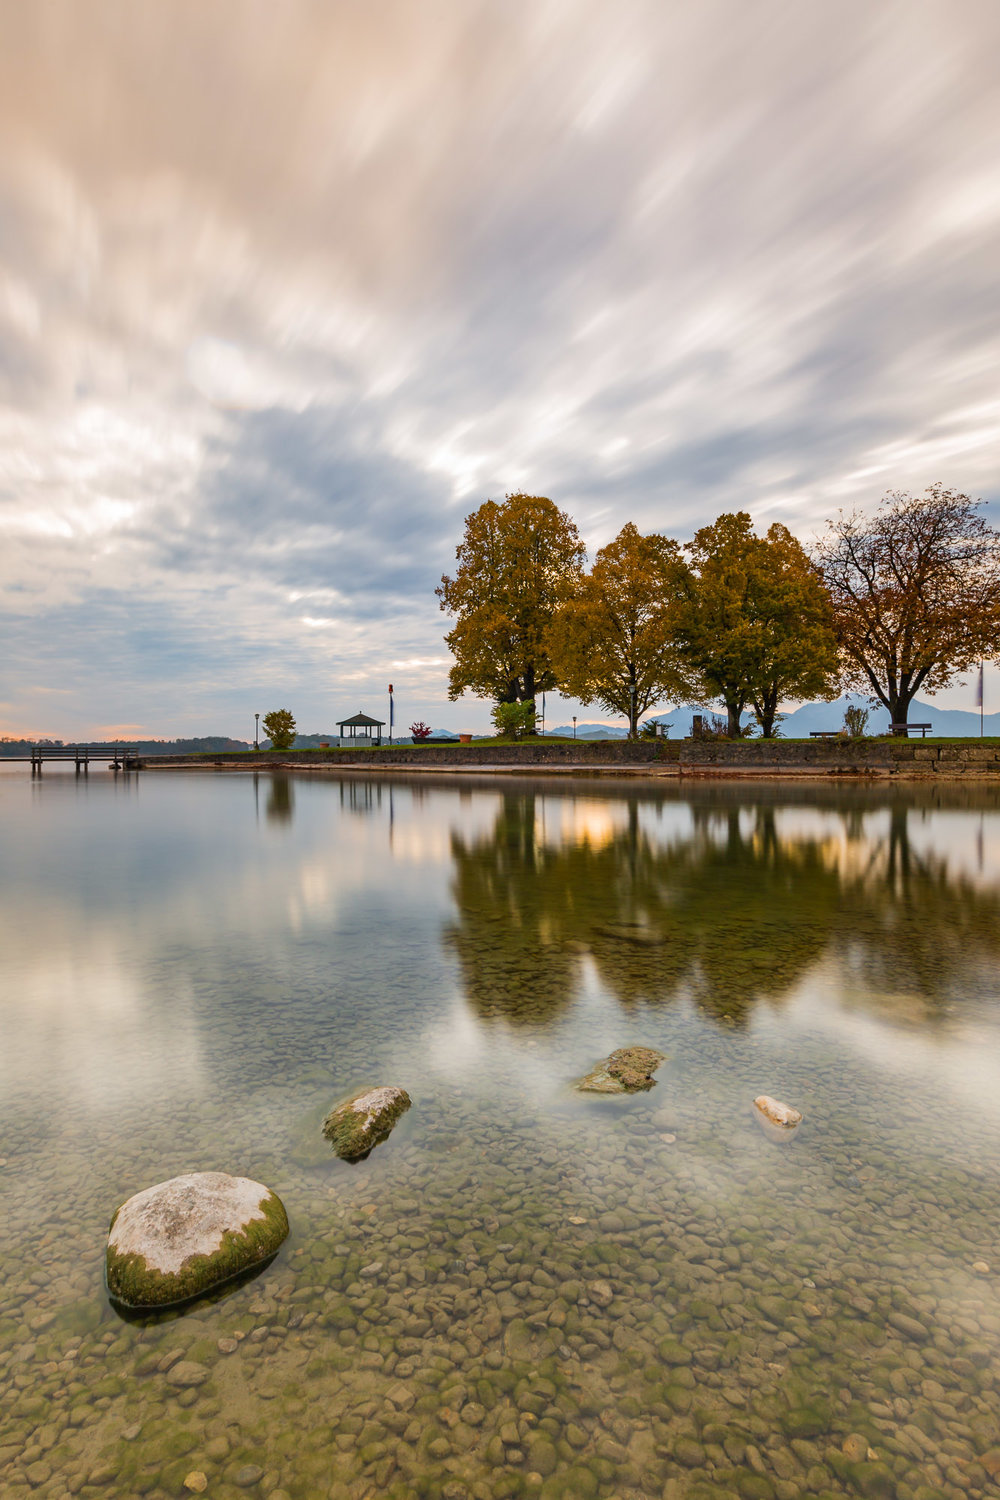 2017_02_06_ben_kepka_cultured_kiwi_Chiemsee-6.jpg